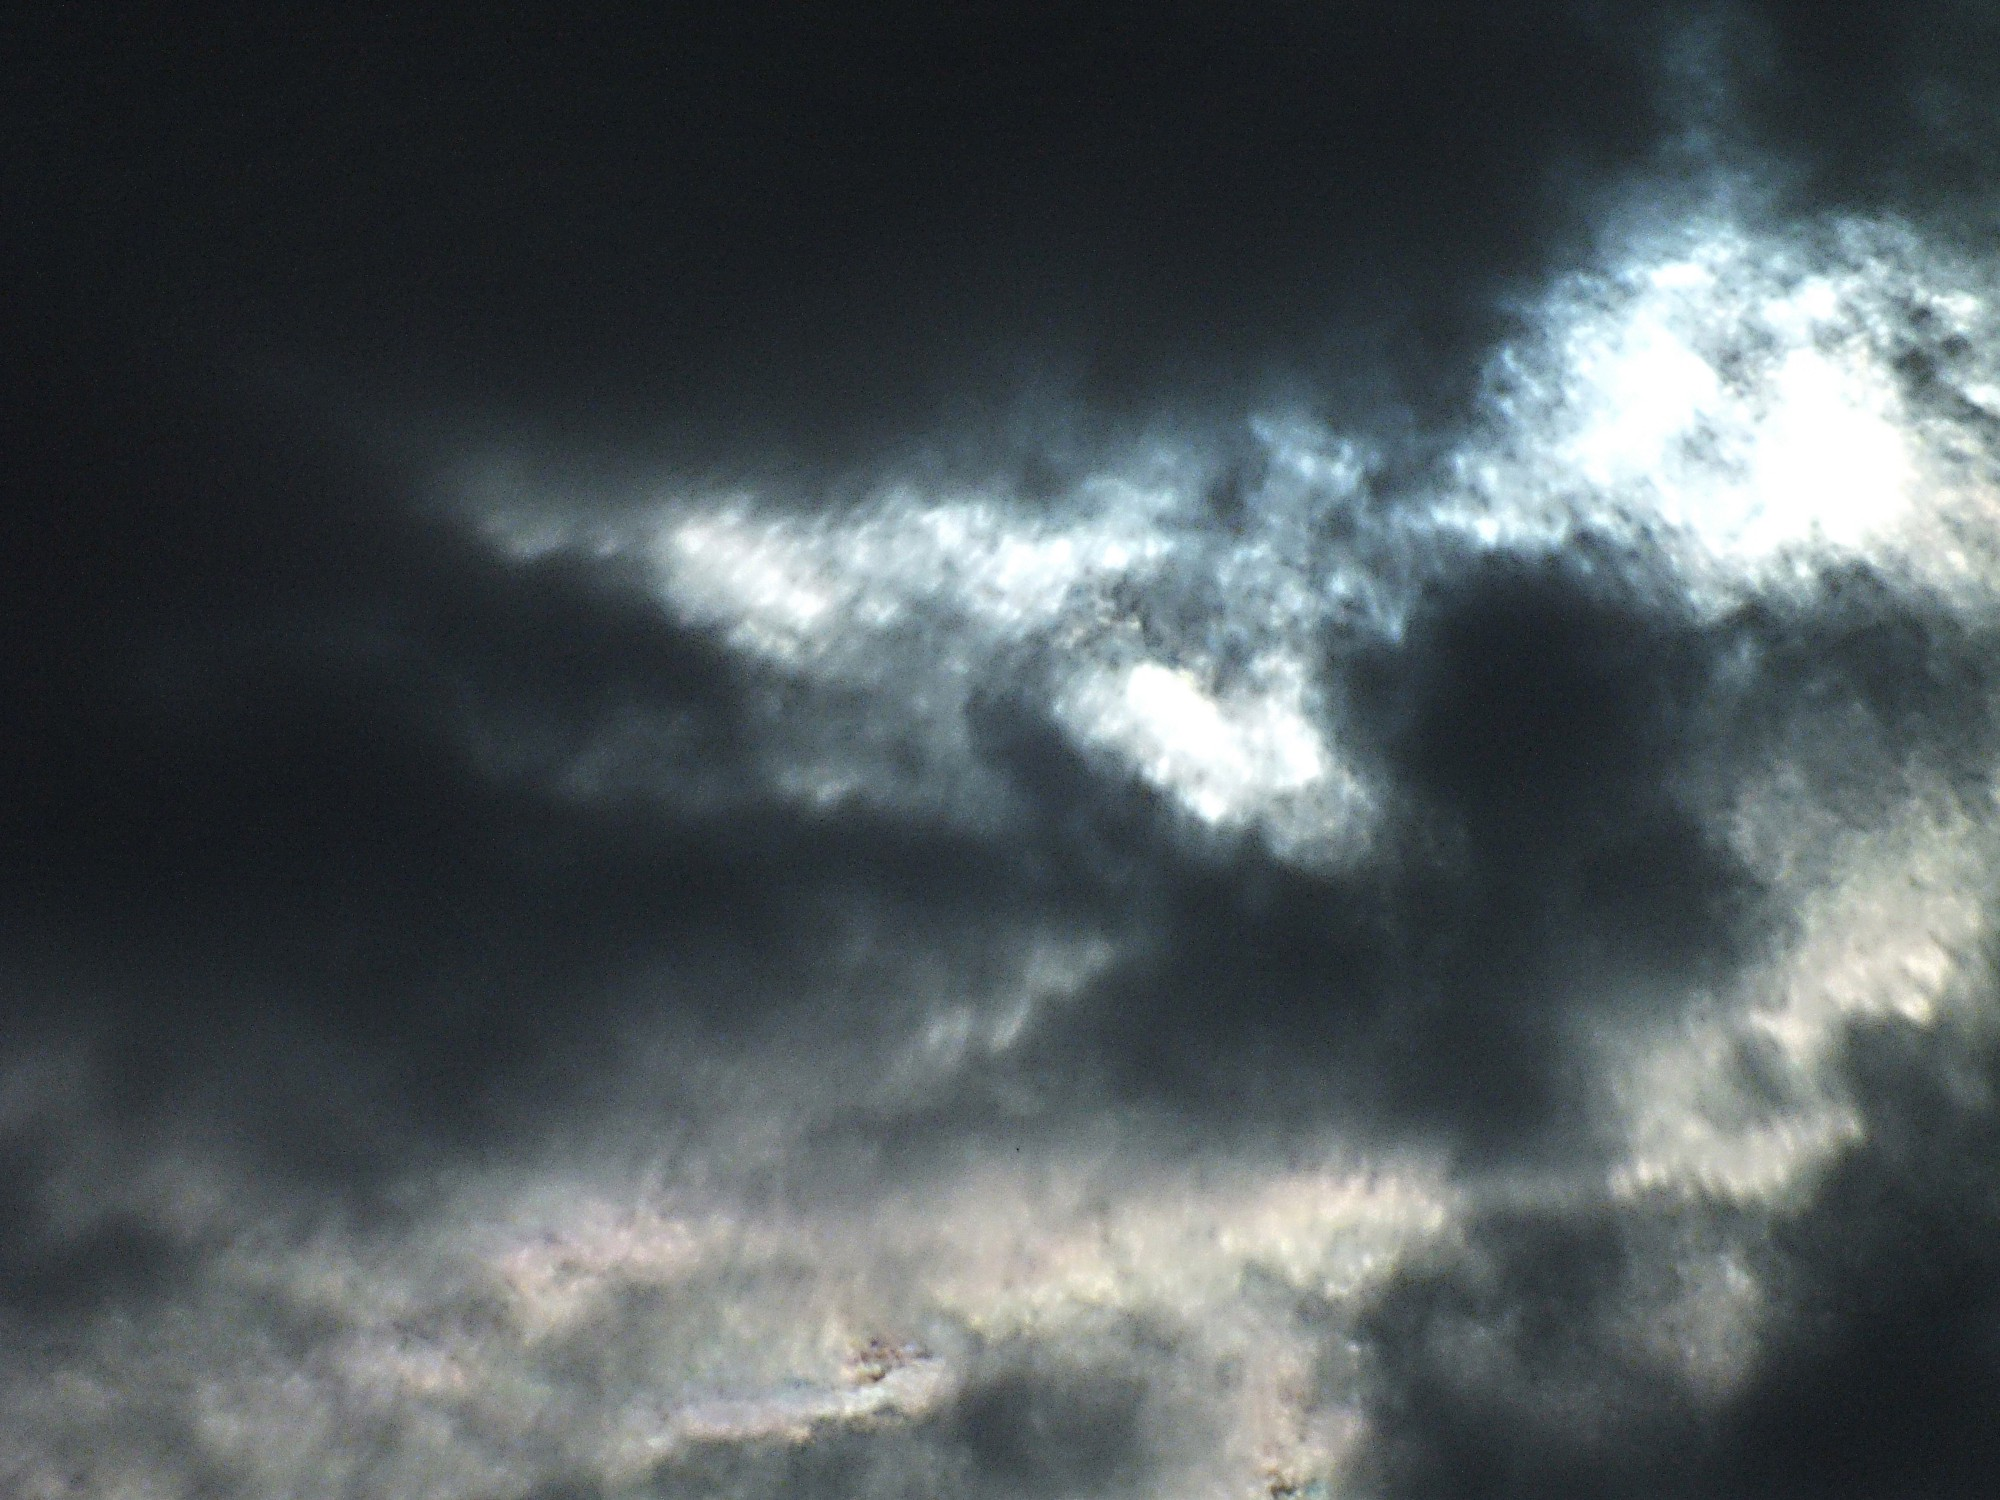 An angry sky fill of dark clouds and smoke.